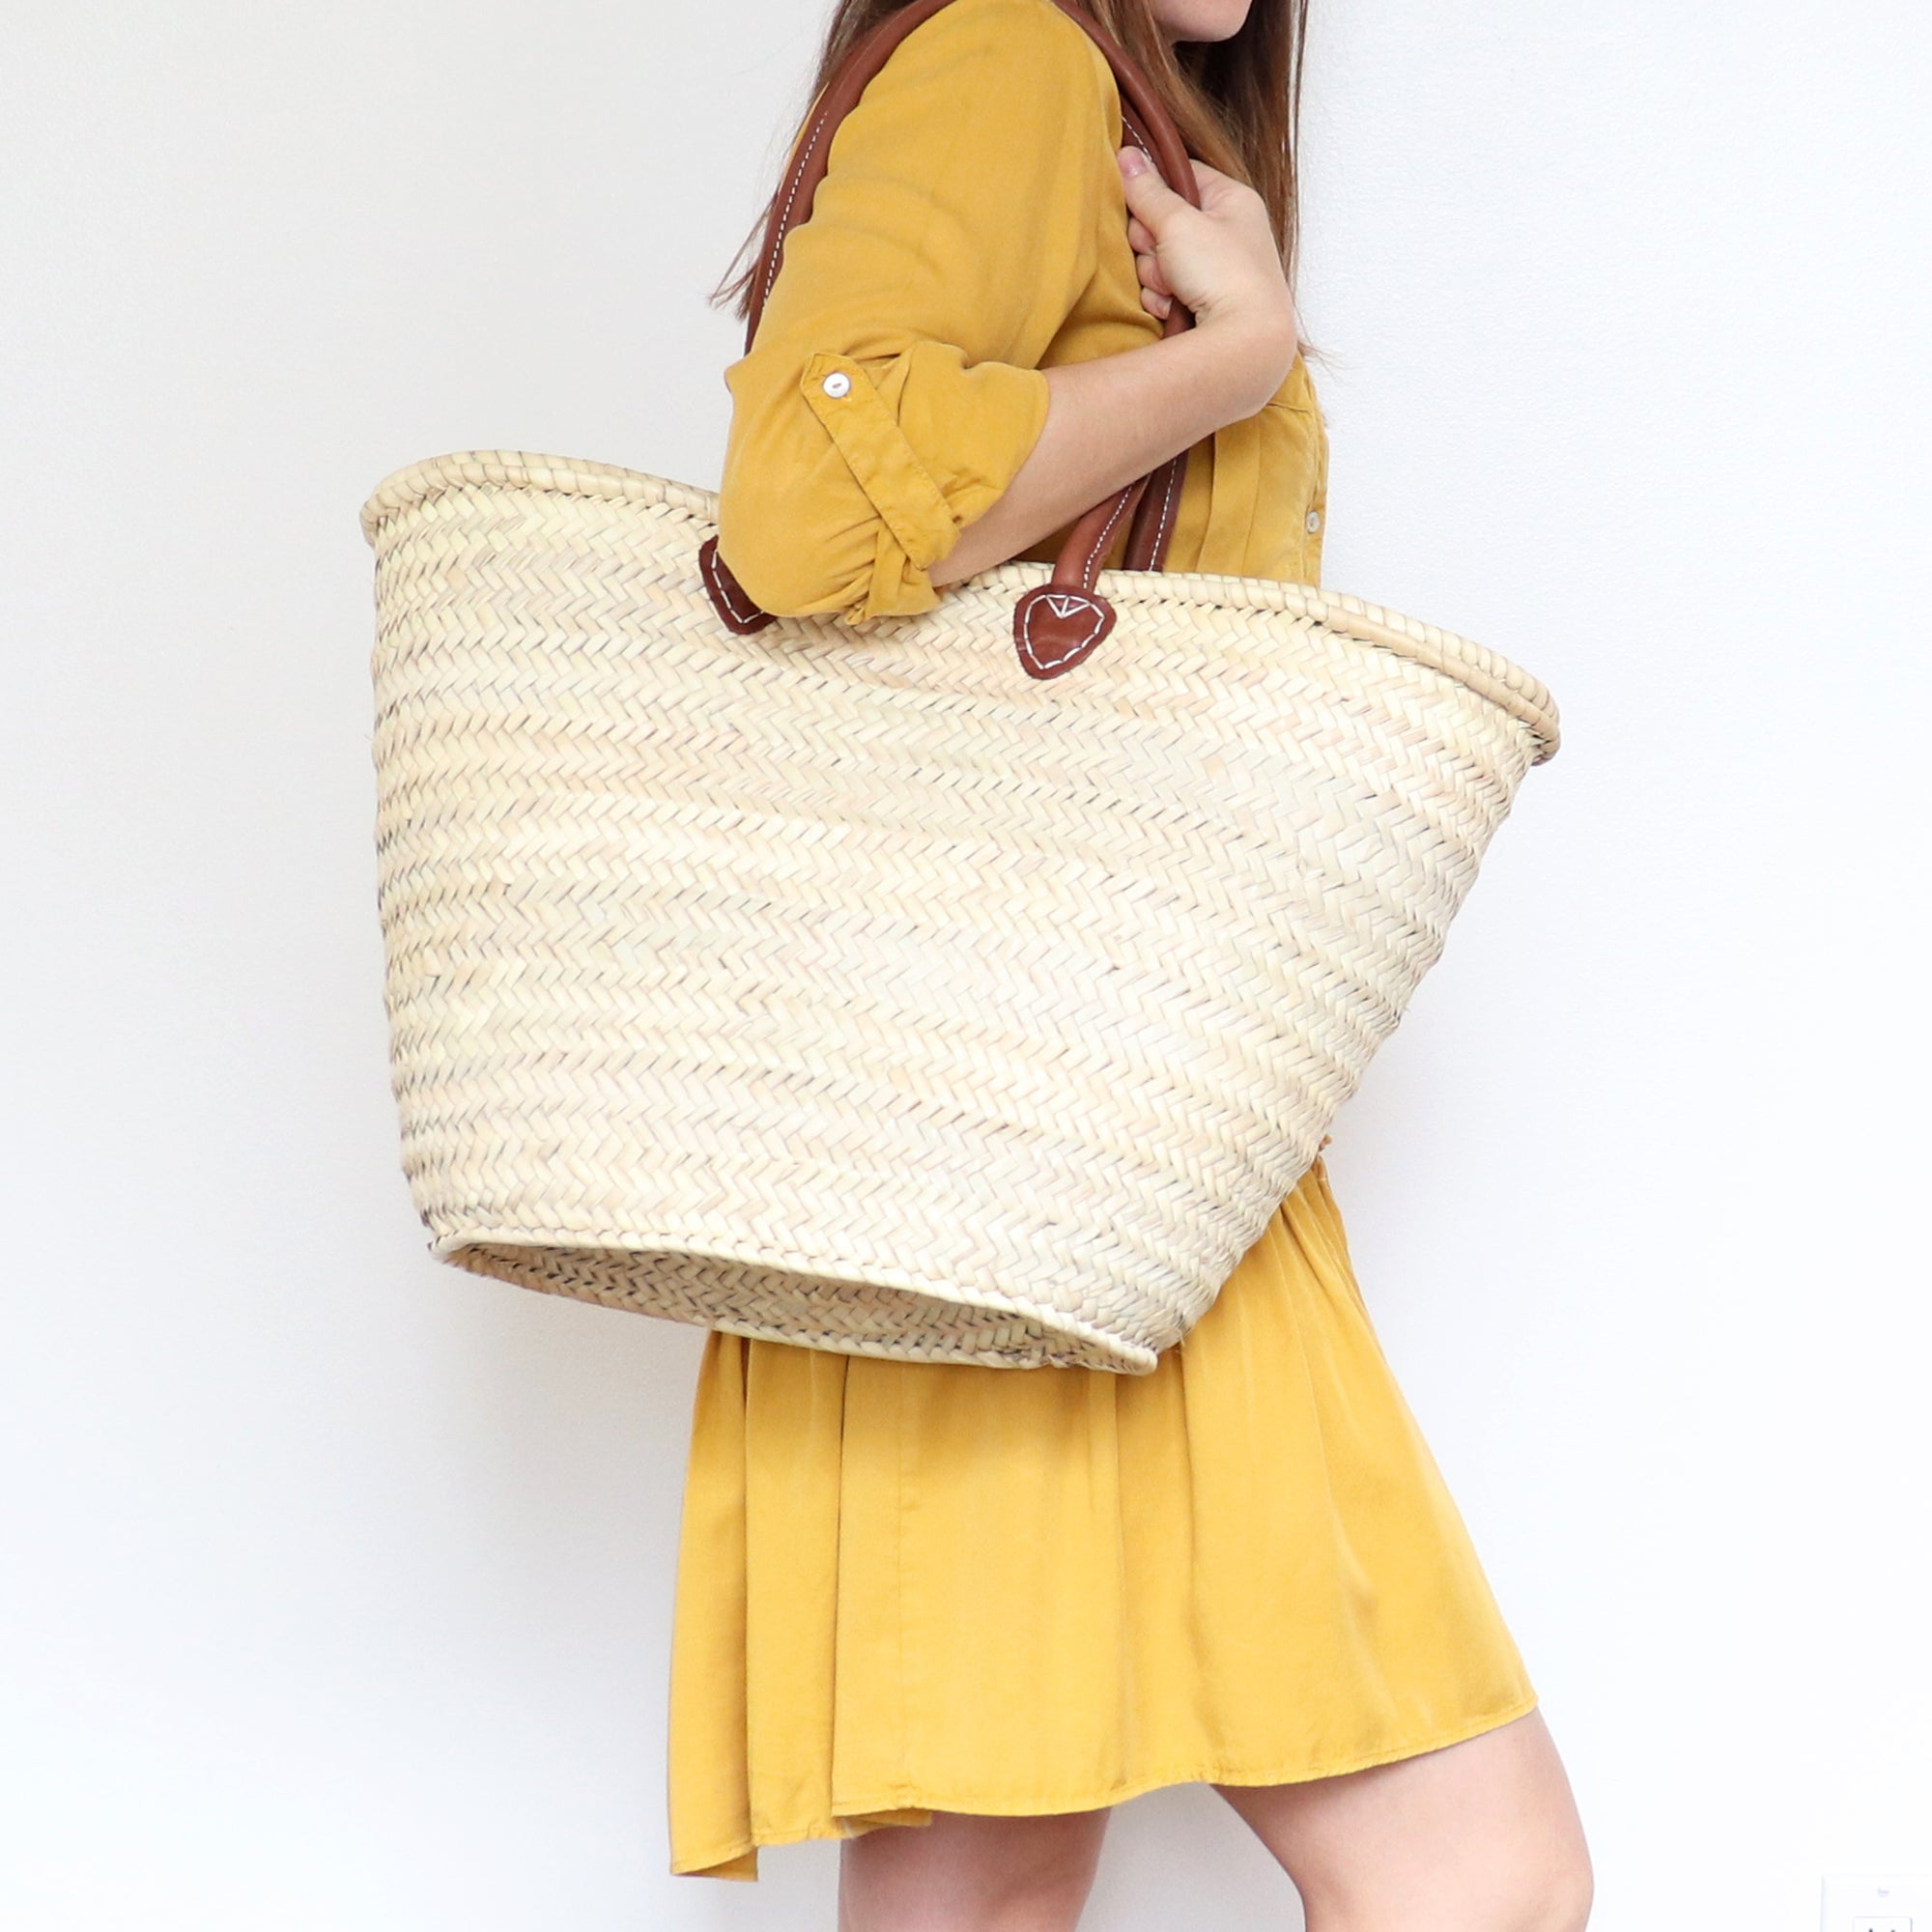 Straw bag with long leather handles